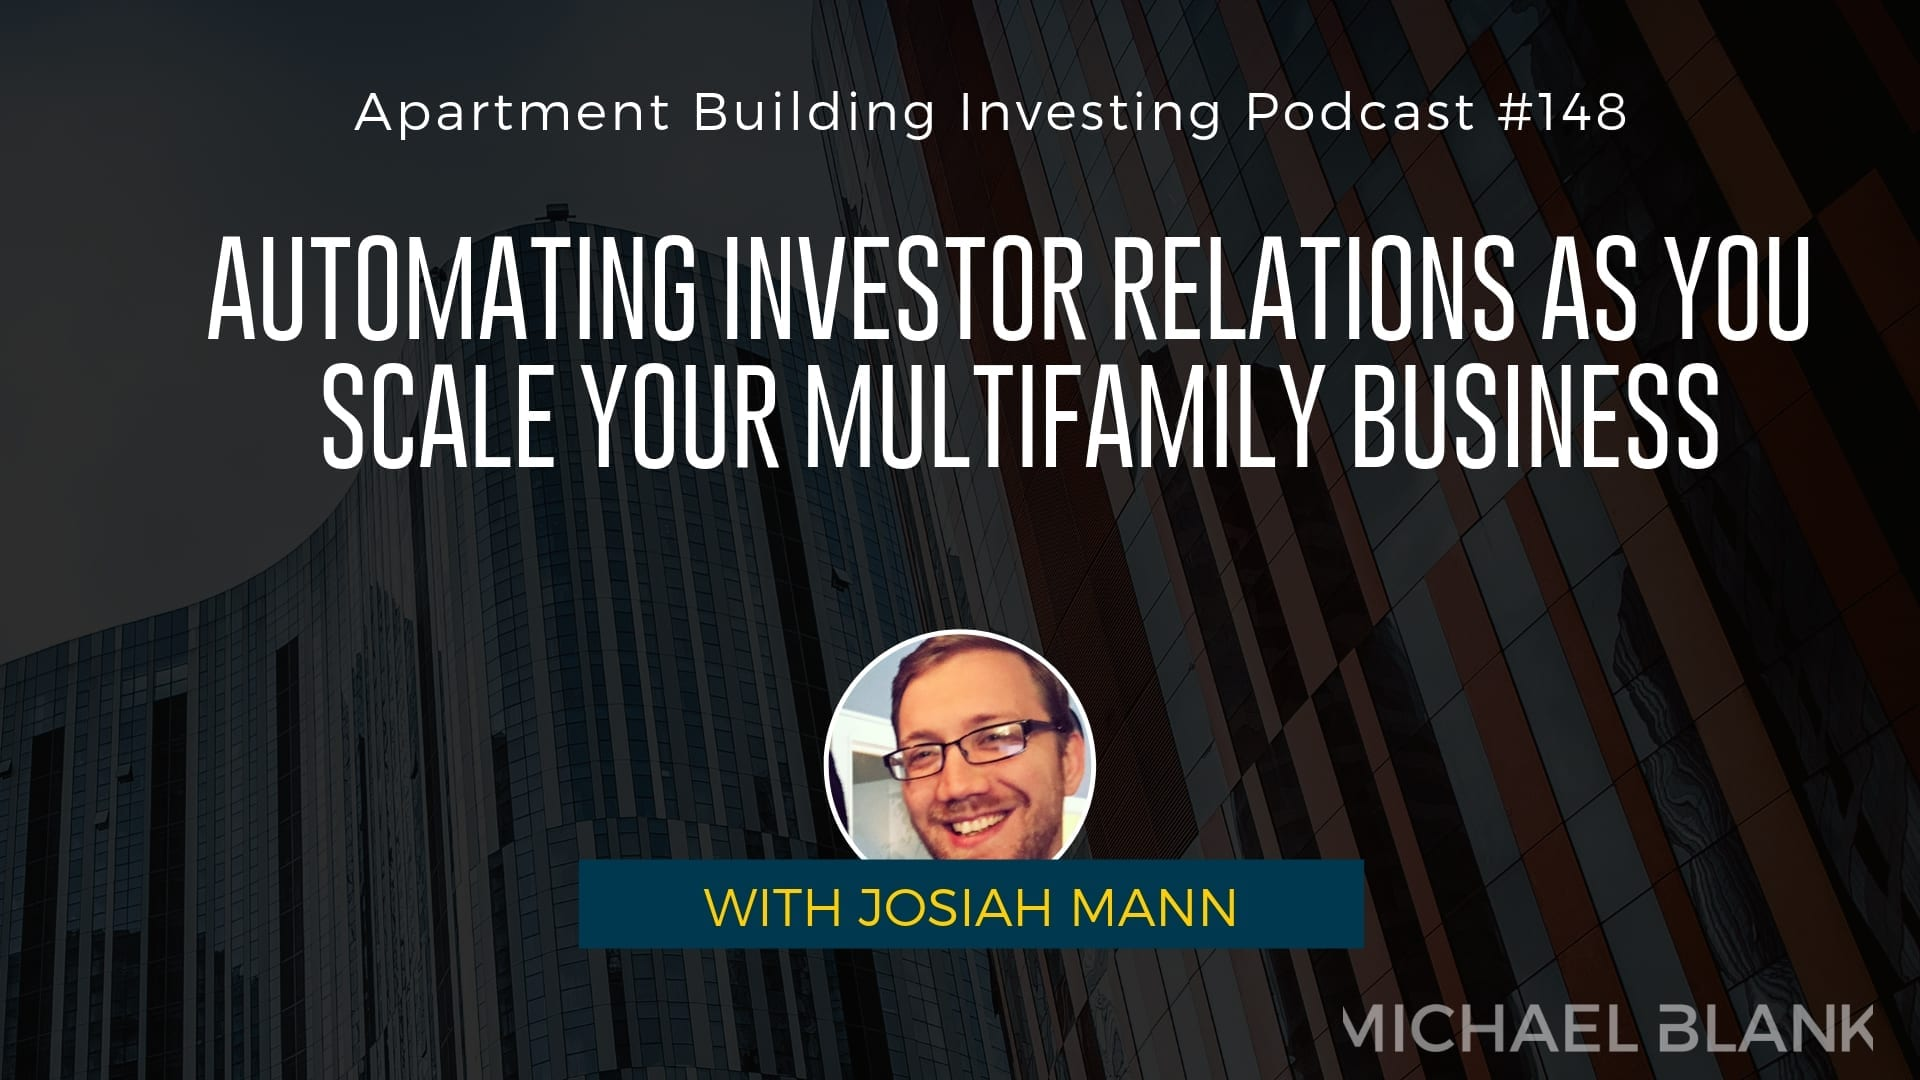 MB 148: Automating Investor Relations as You Scale Your Multifamily Business – With Josiah Mann